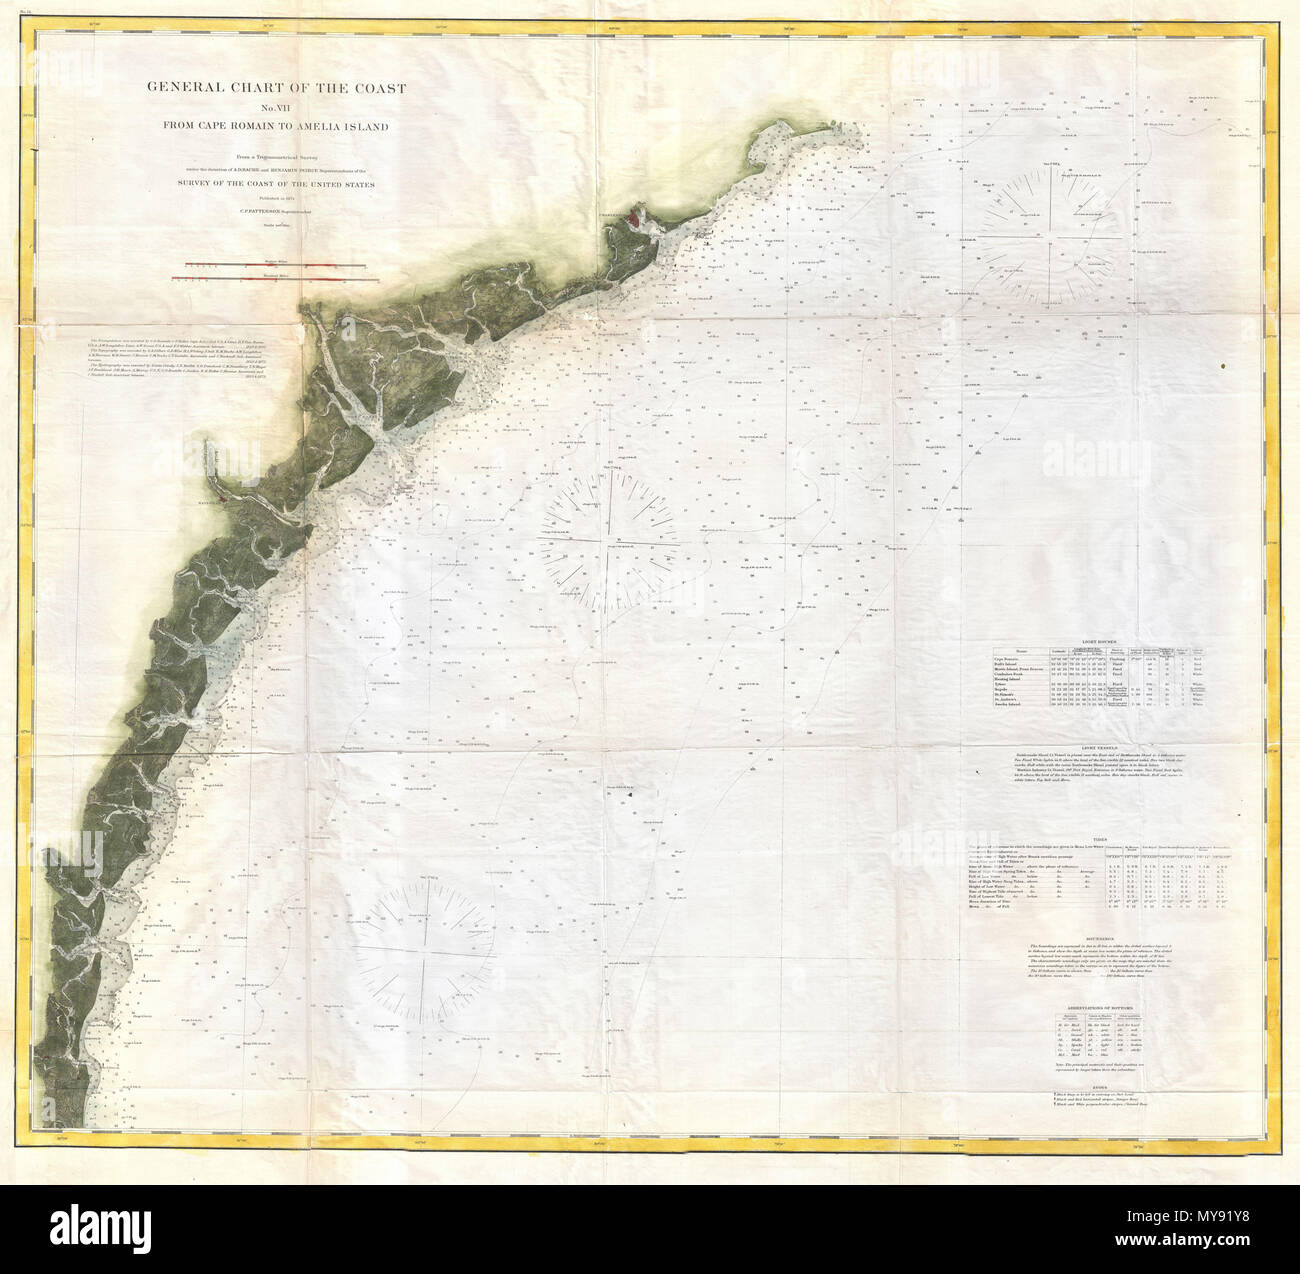 General Chart Of The Coast No Vii From Cape Romain To Amelia Island